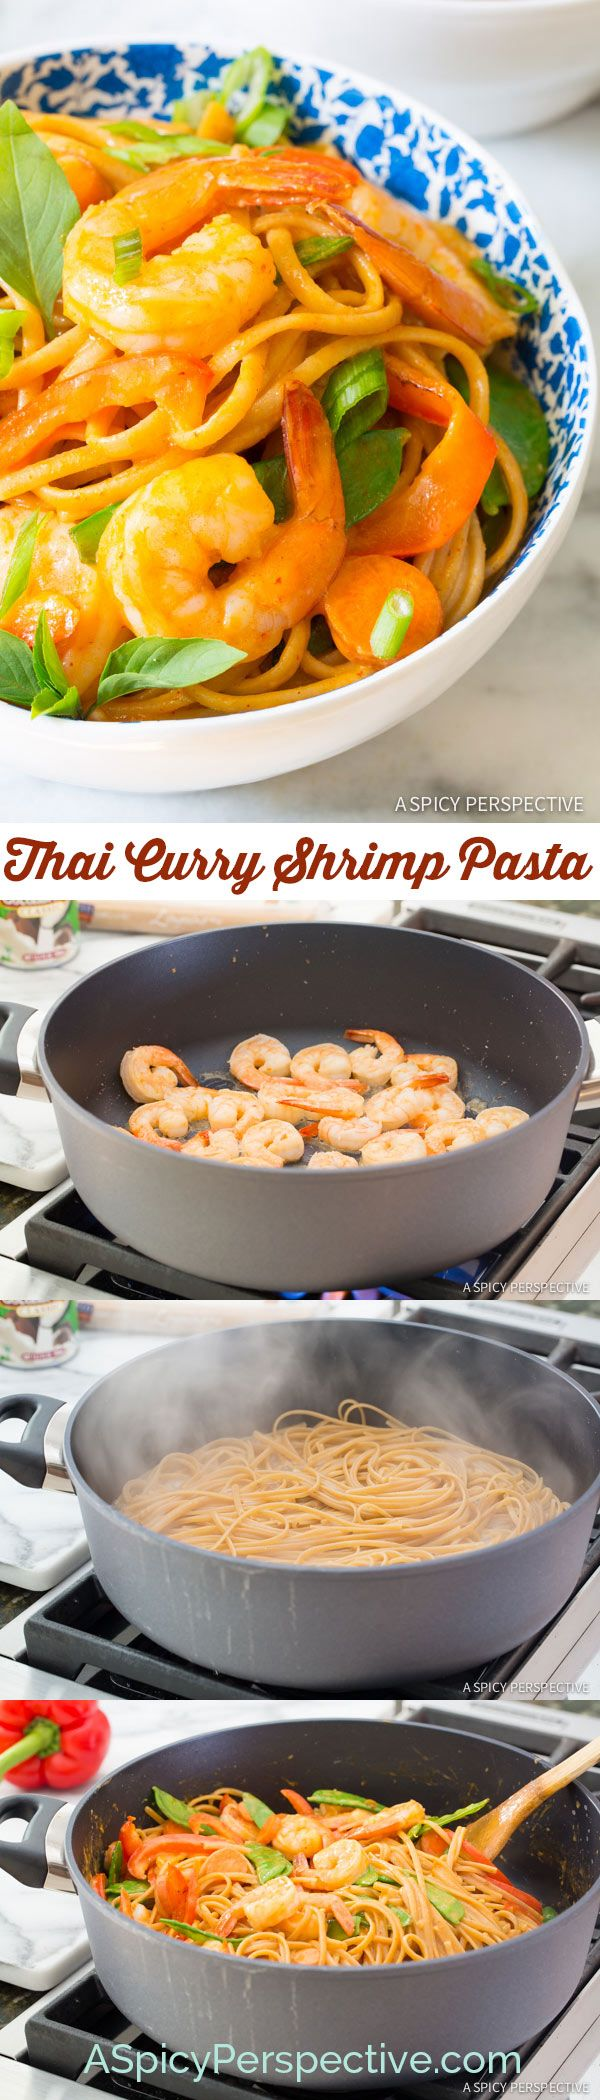 THE BEST One Pot Thai Curry Shrimp Pasta on ASpicyPerspective.com #onepotmeal